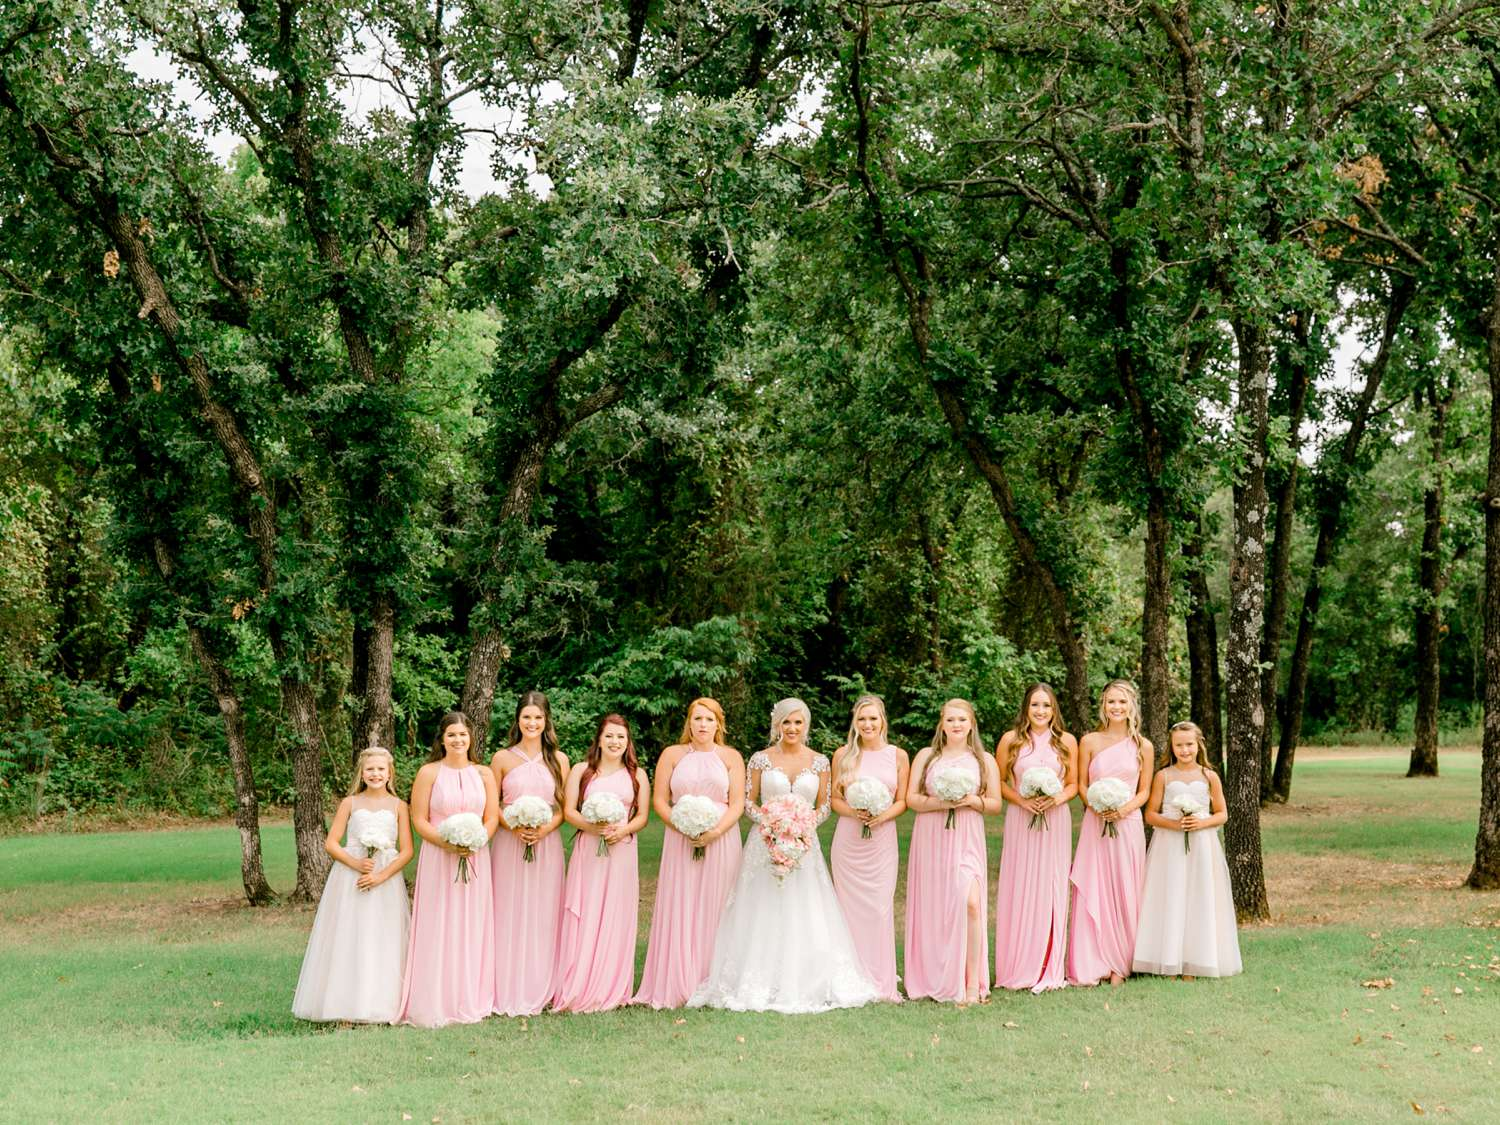 JESSICA+LYLE+NEEL+THE_SPRINGS_EVENTS_WEDDING_OKLAHOMA_ALLEEJ_PHOTOGRAPHER_0027.jpg